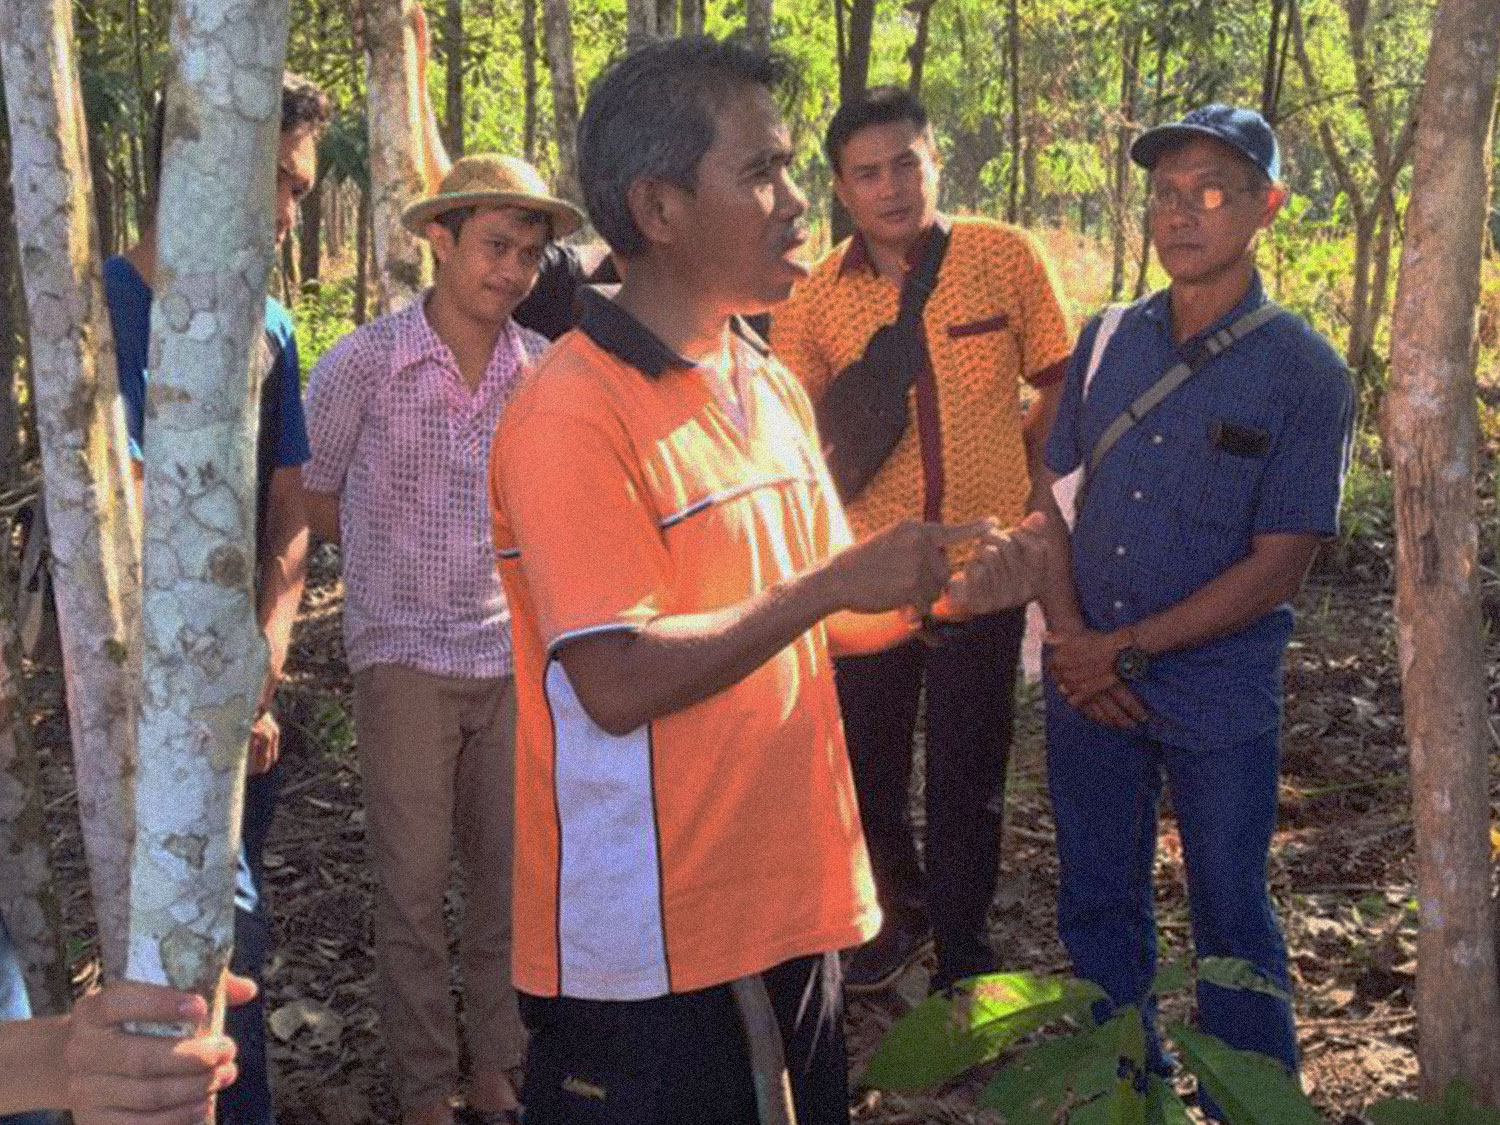 Partnership Development and Training on Sustainable Agriculture Practices in West Kalimantan